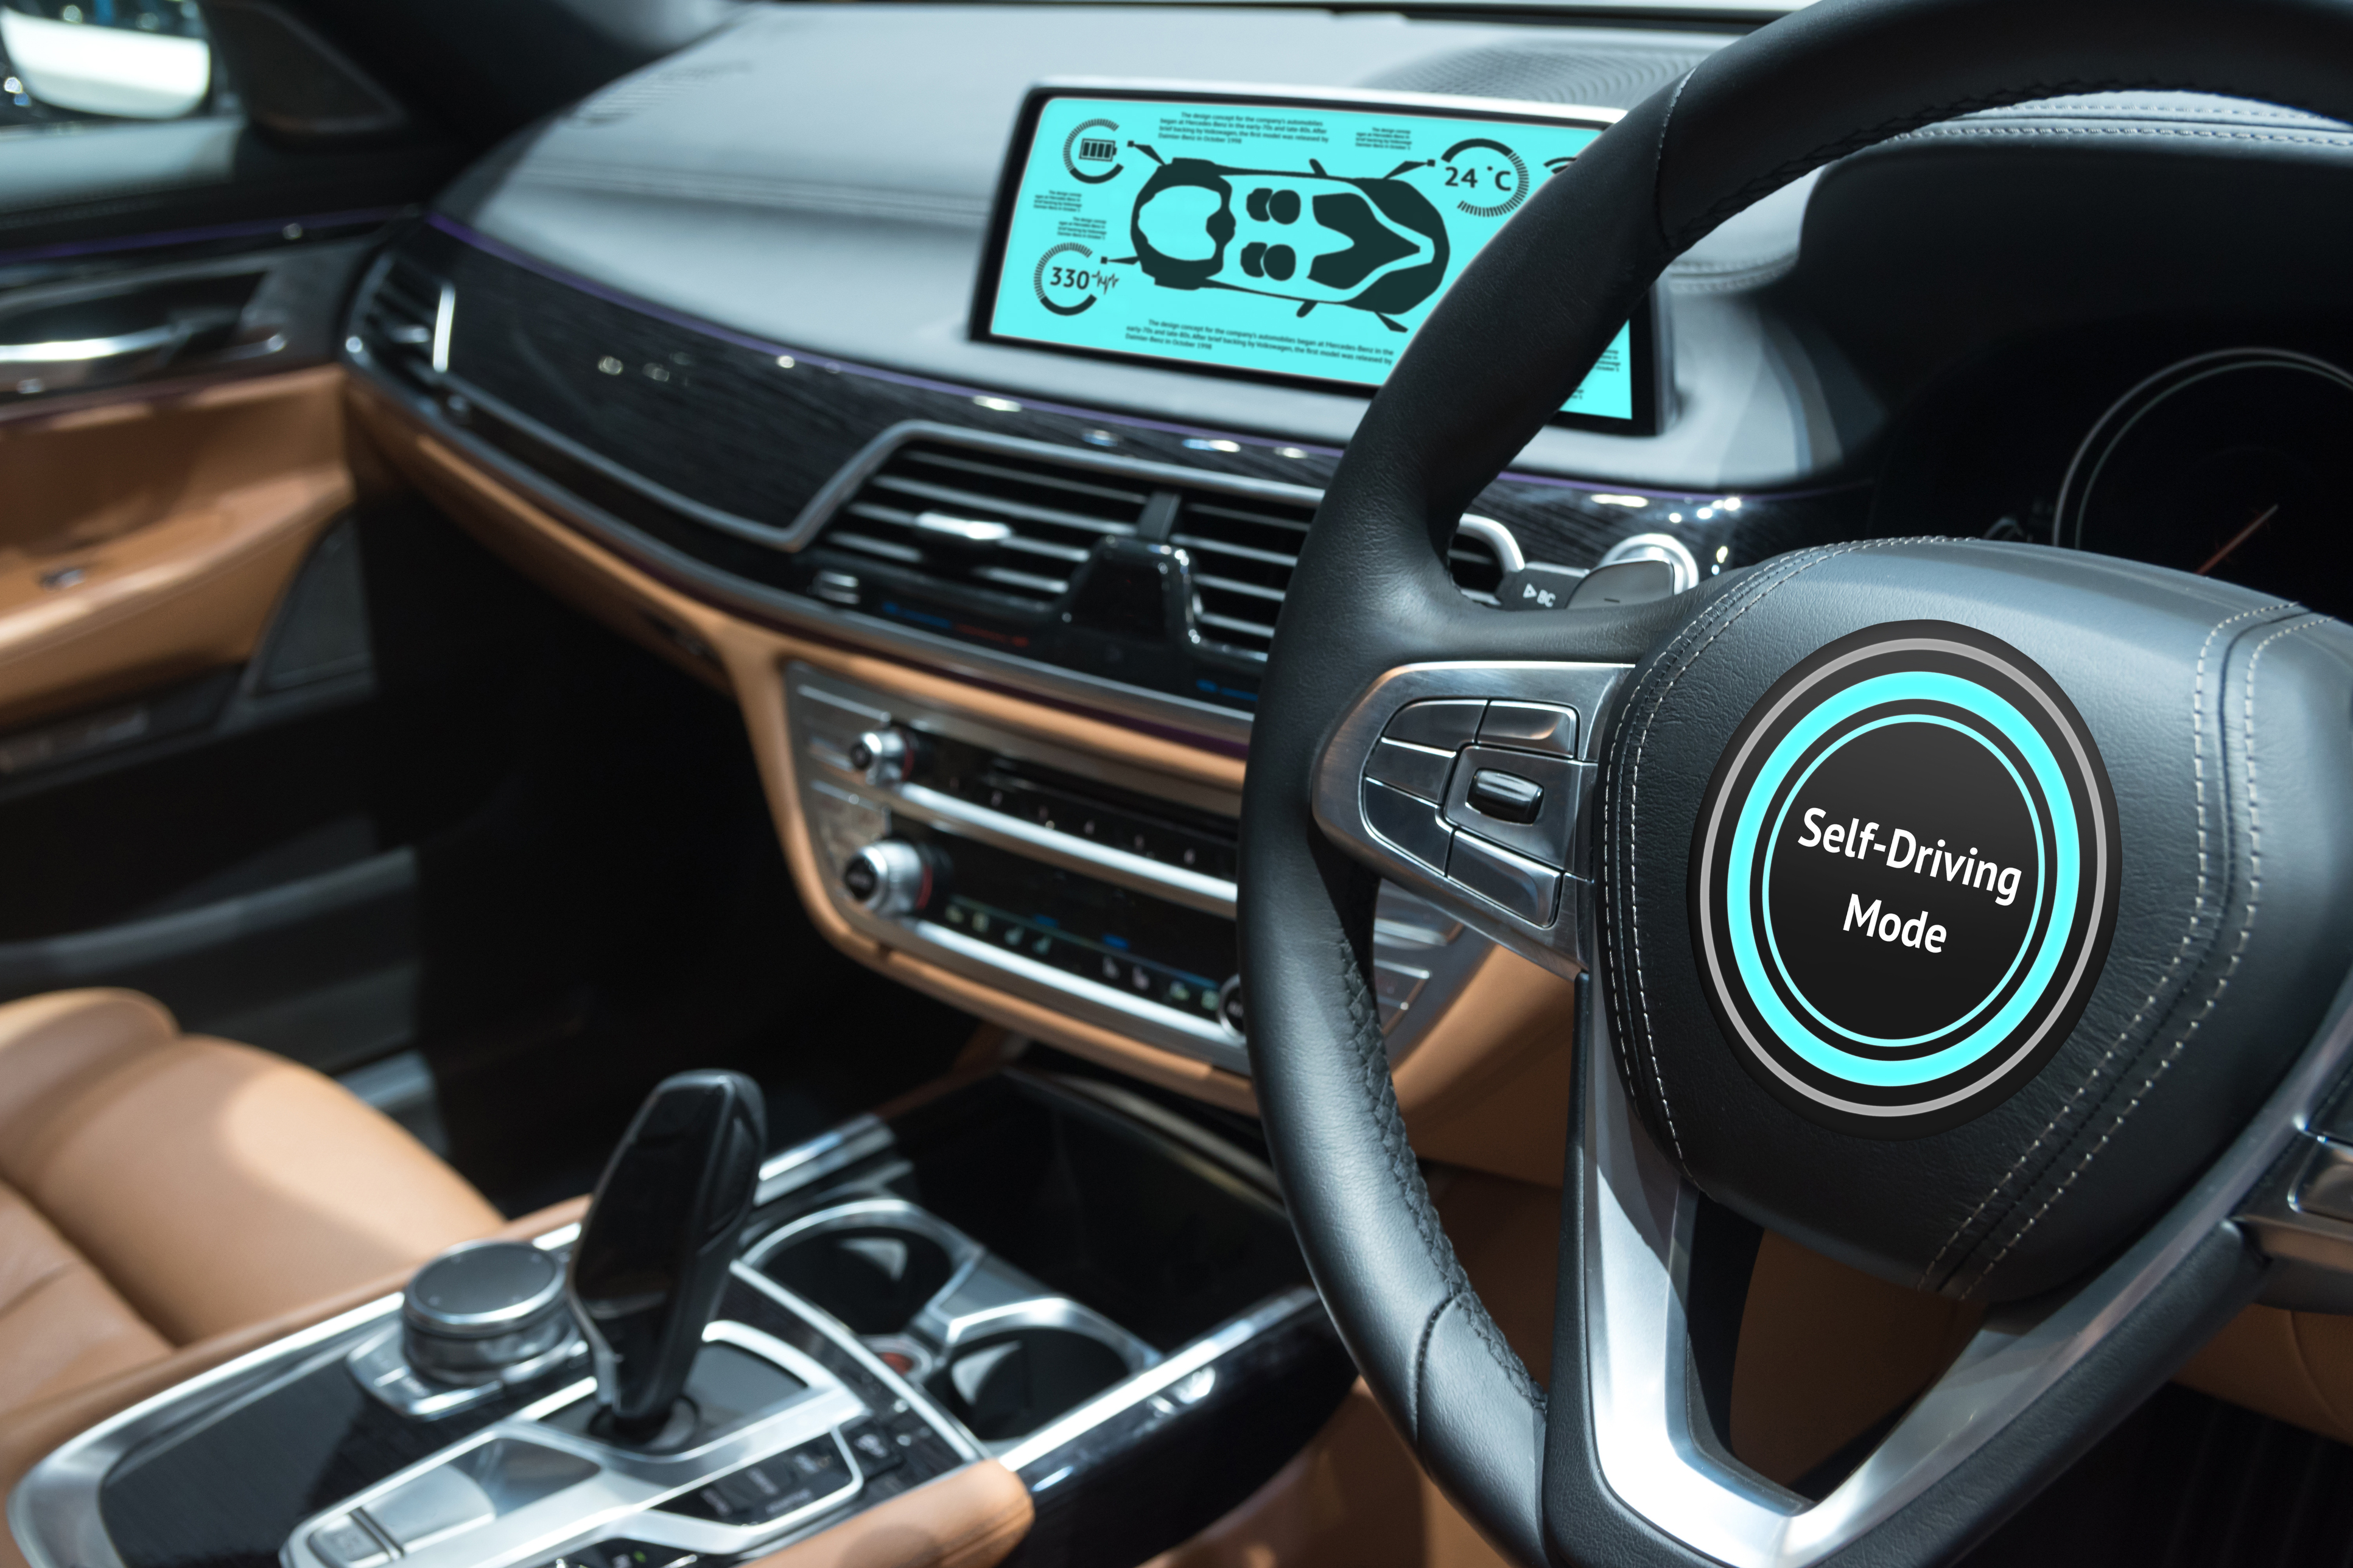 Continental Partners With Intel, BMW and Mobileye For Self-Driving Car initiative